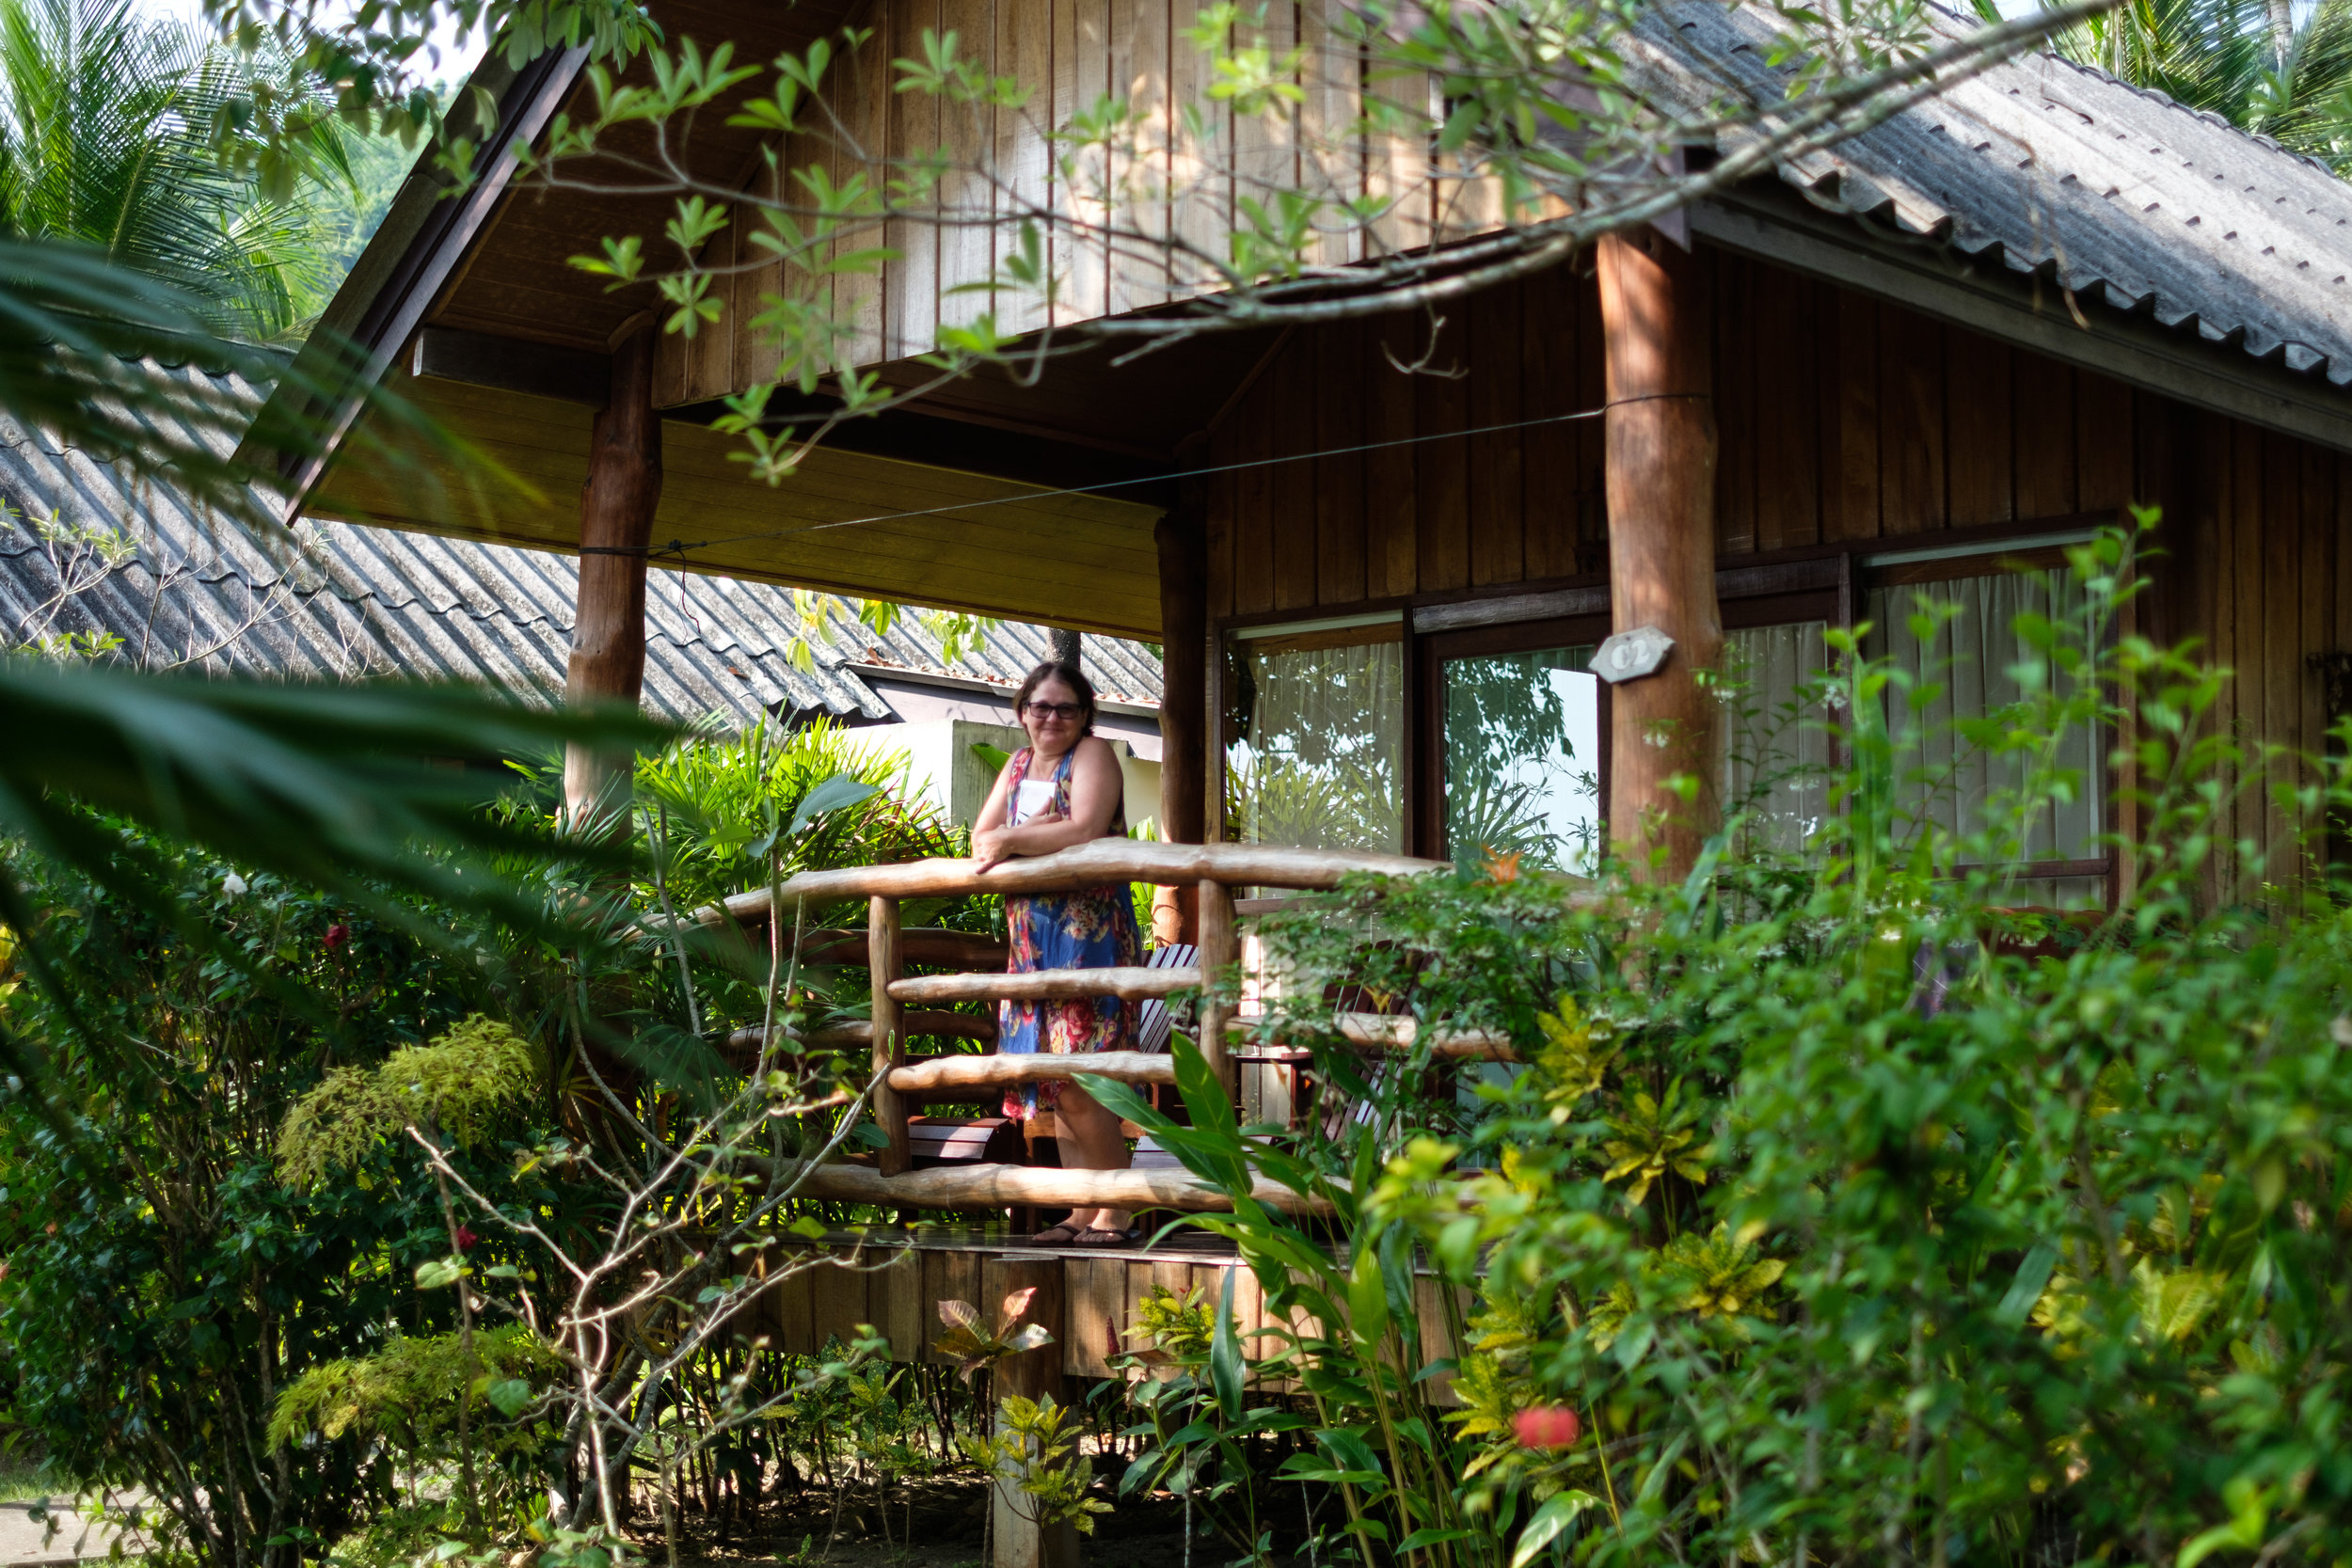 A woman stands or the porch of a private bungalow at The Thiwson Beach Resort at Koh Yao Yai in Thailand